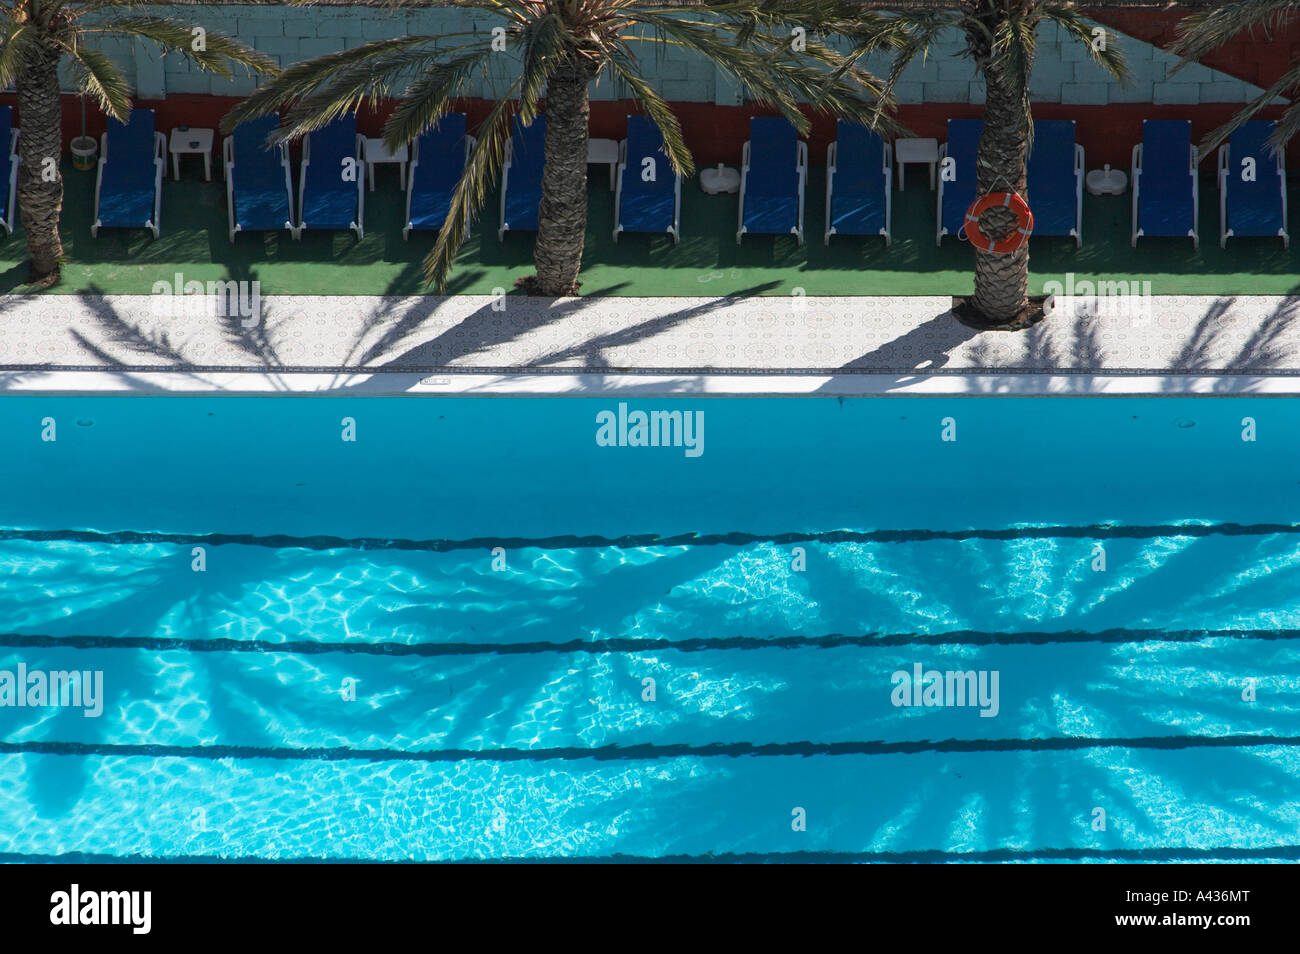 Swimming Lane From Above Stock Photos Amp Swimming Lane From